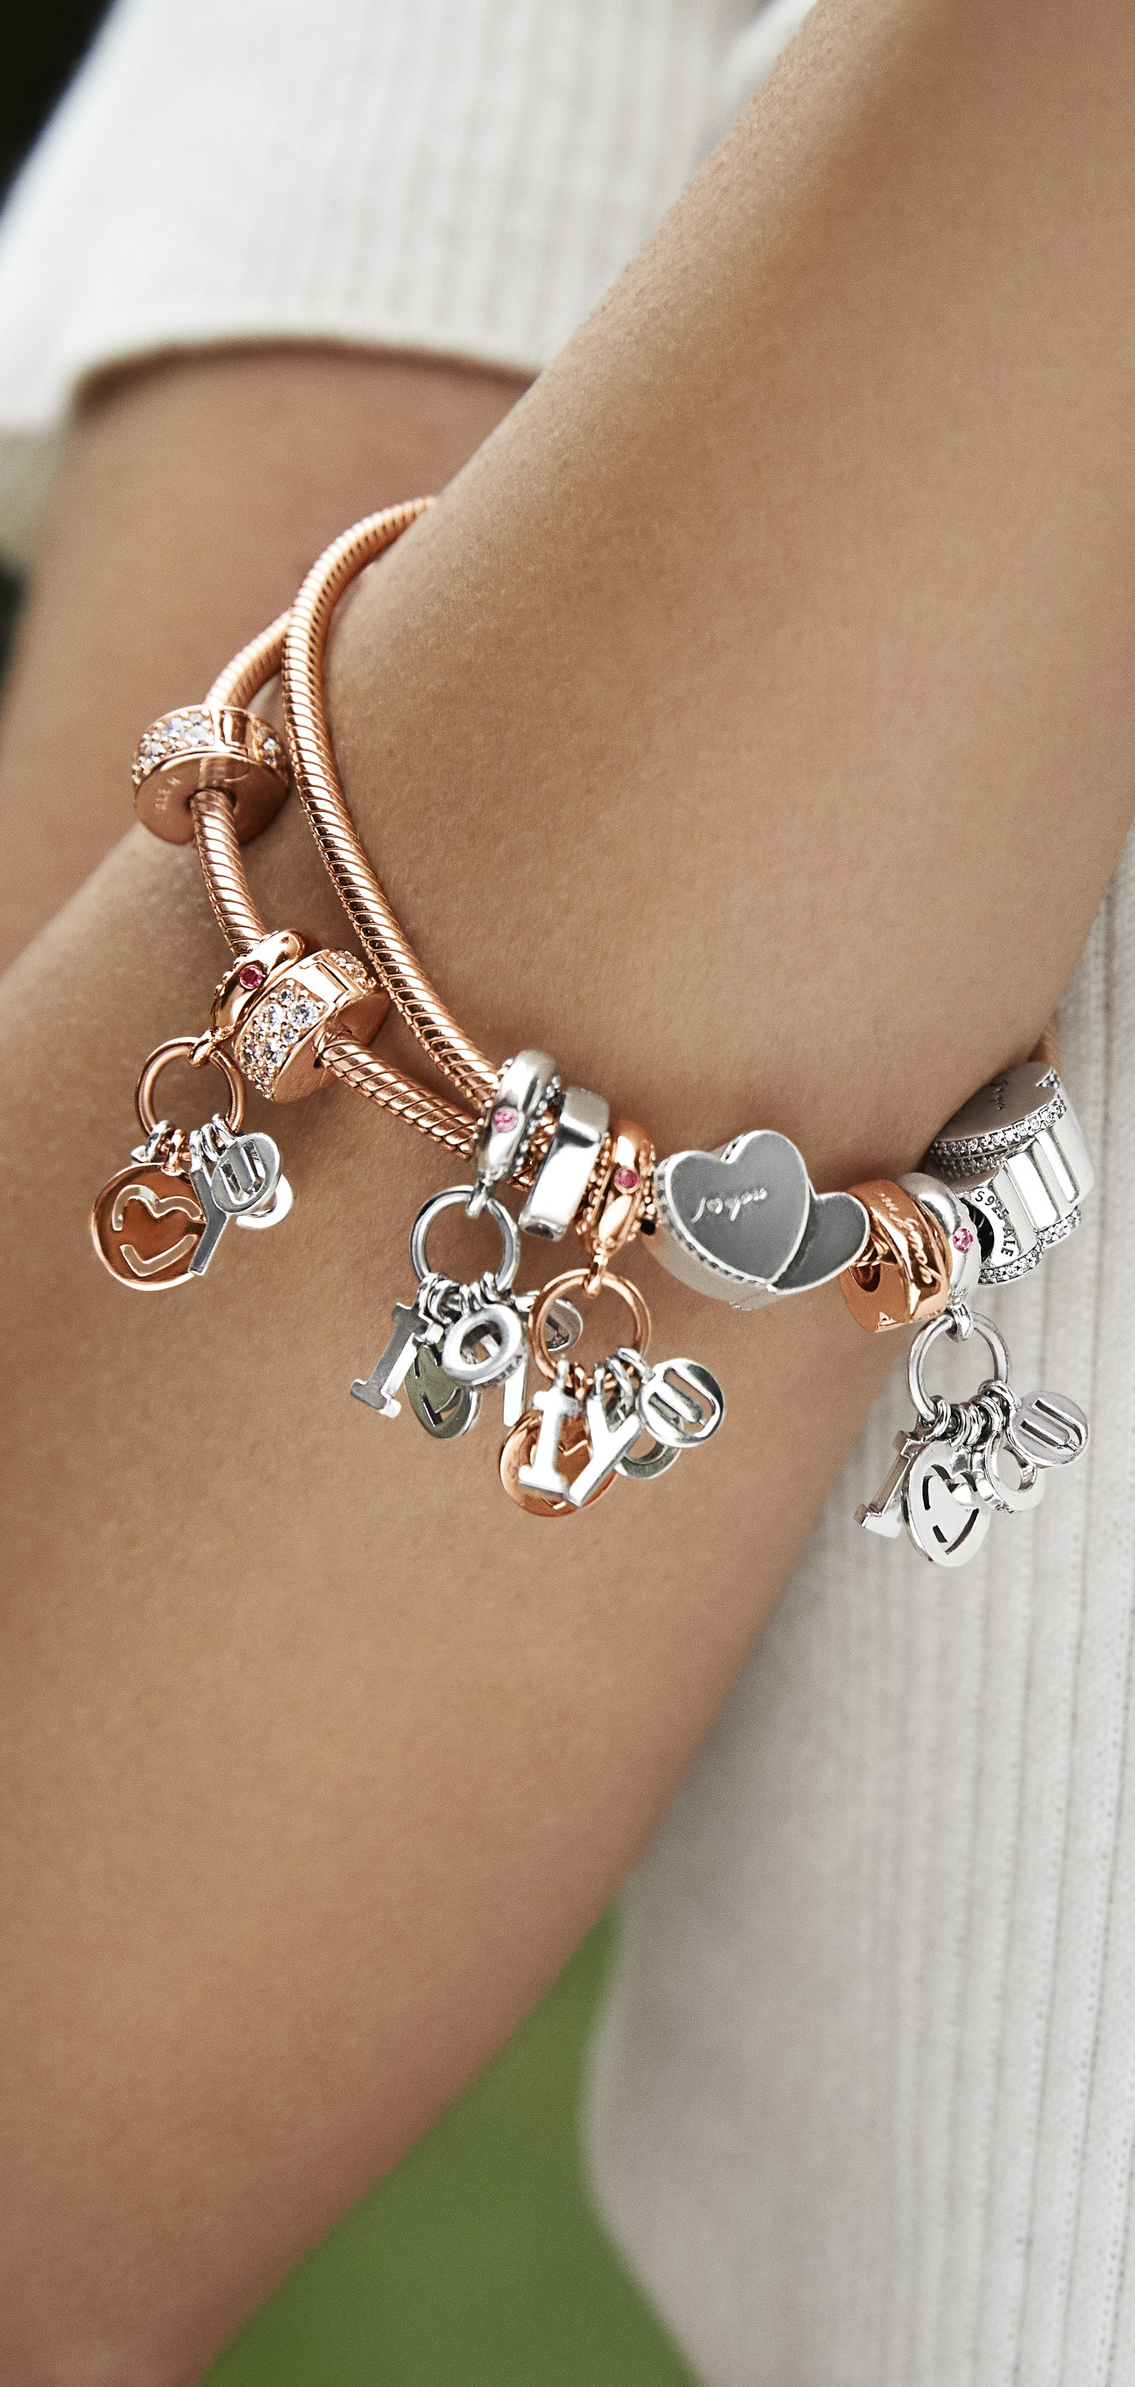 cb58c8905 Three words, two hearts, one meaning. Write the story of you and your  special someone this Valentine's Day with PANDORA's new charms and bracelets .